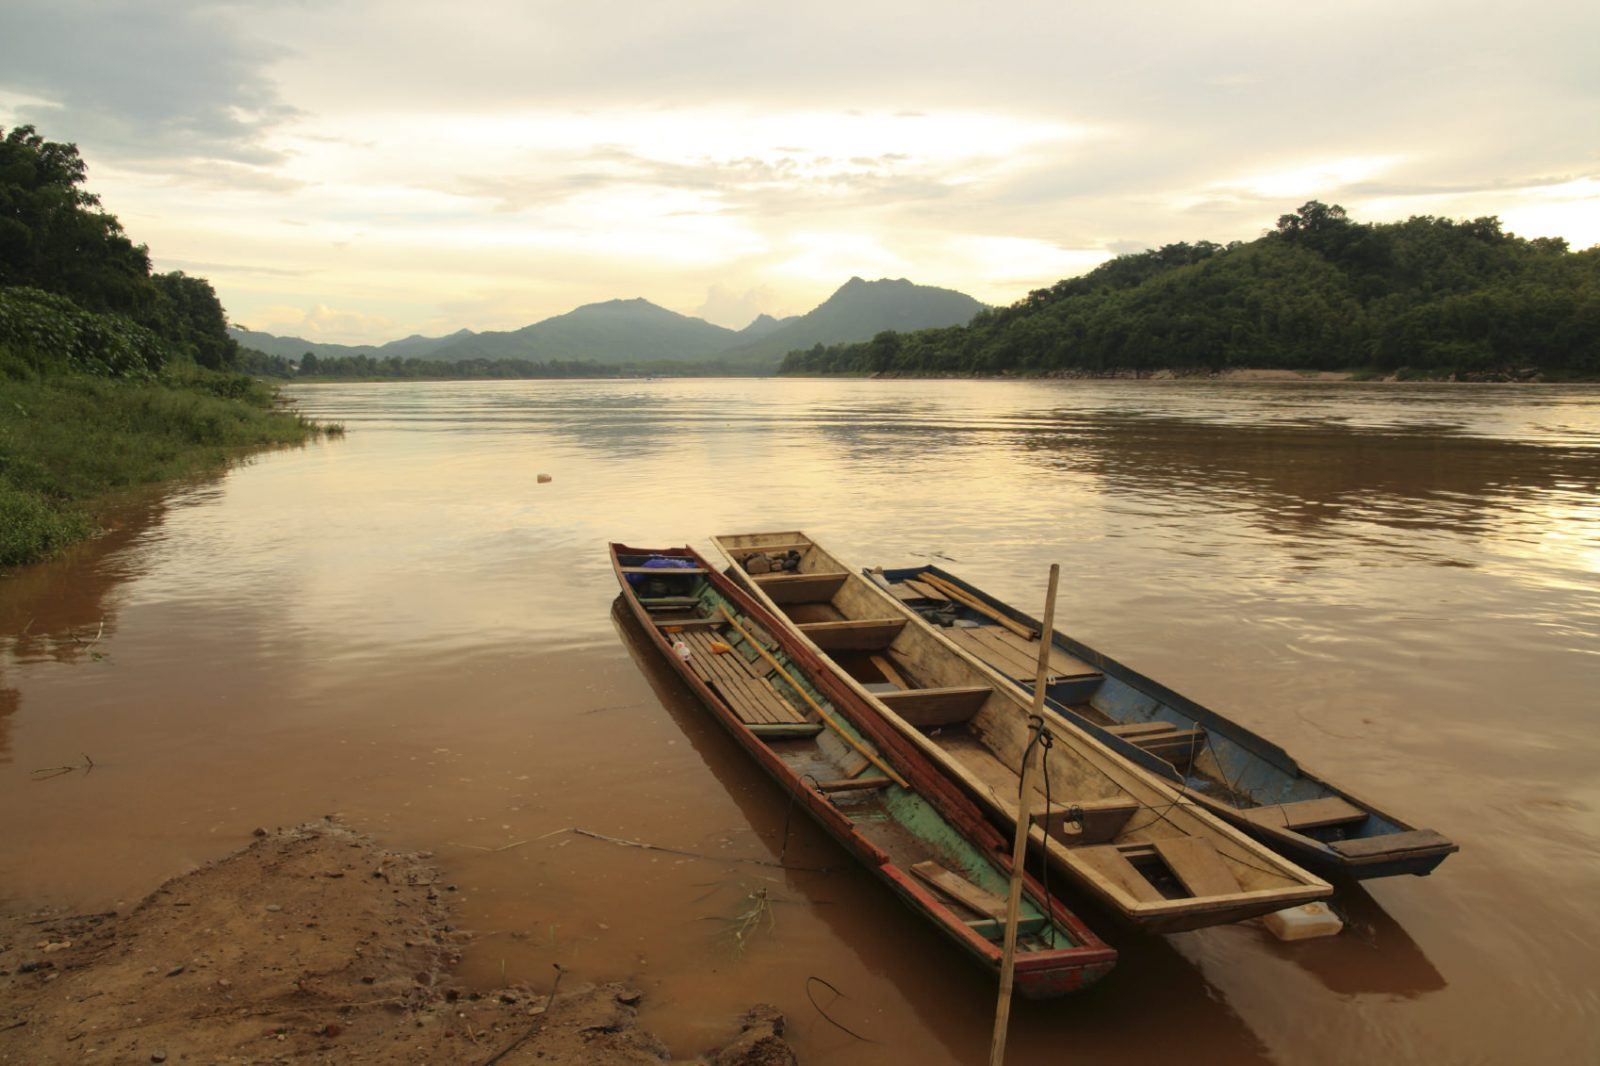 Boats in Maekhong river